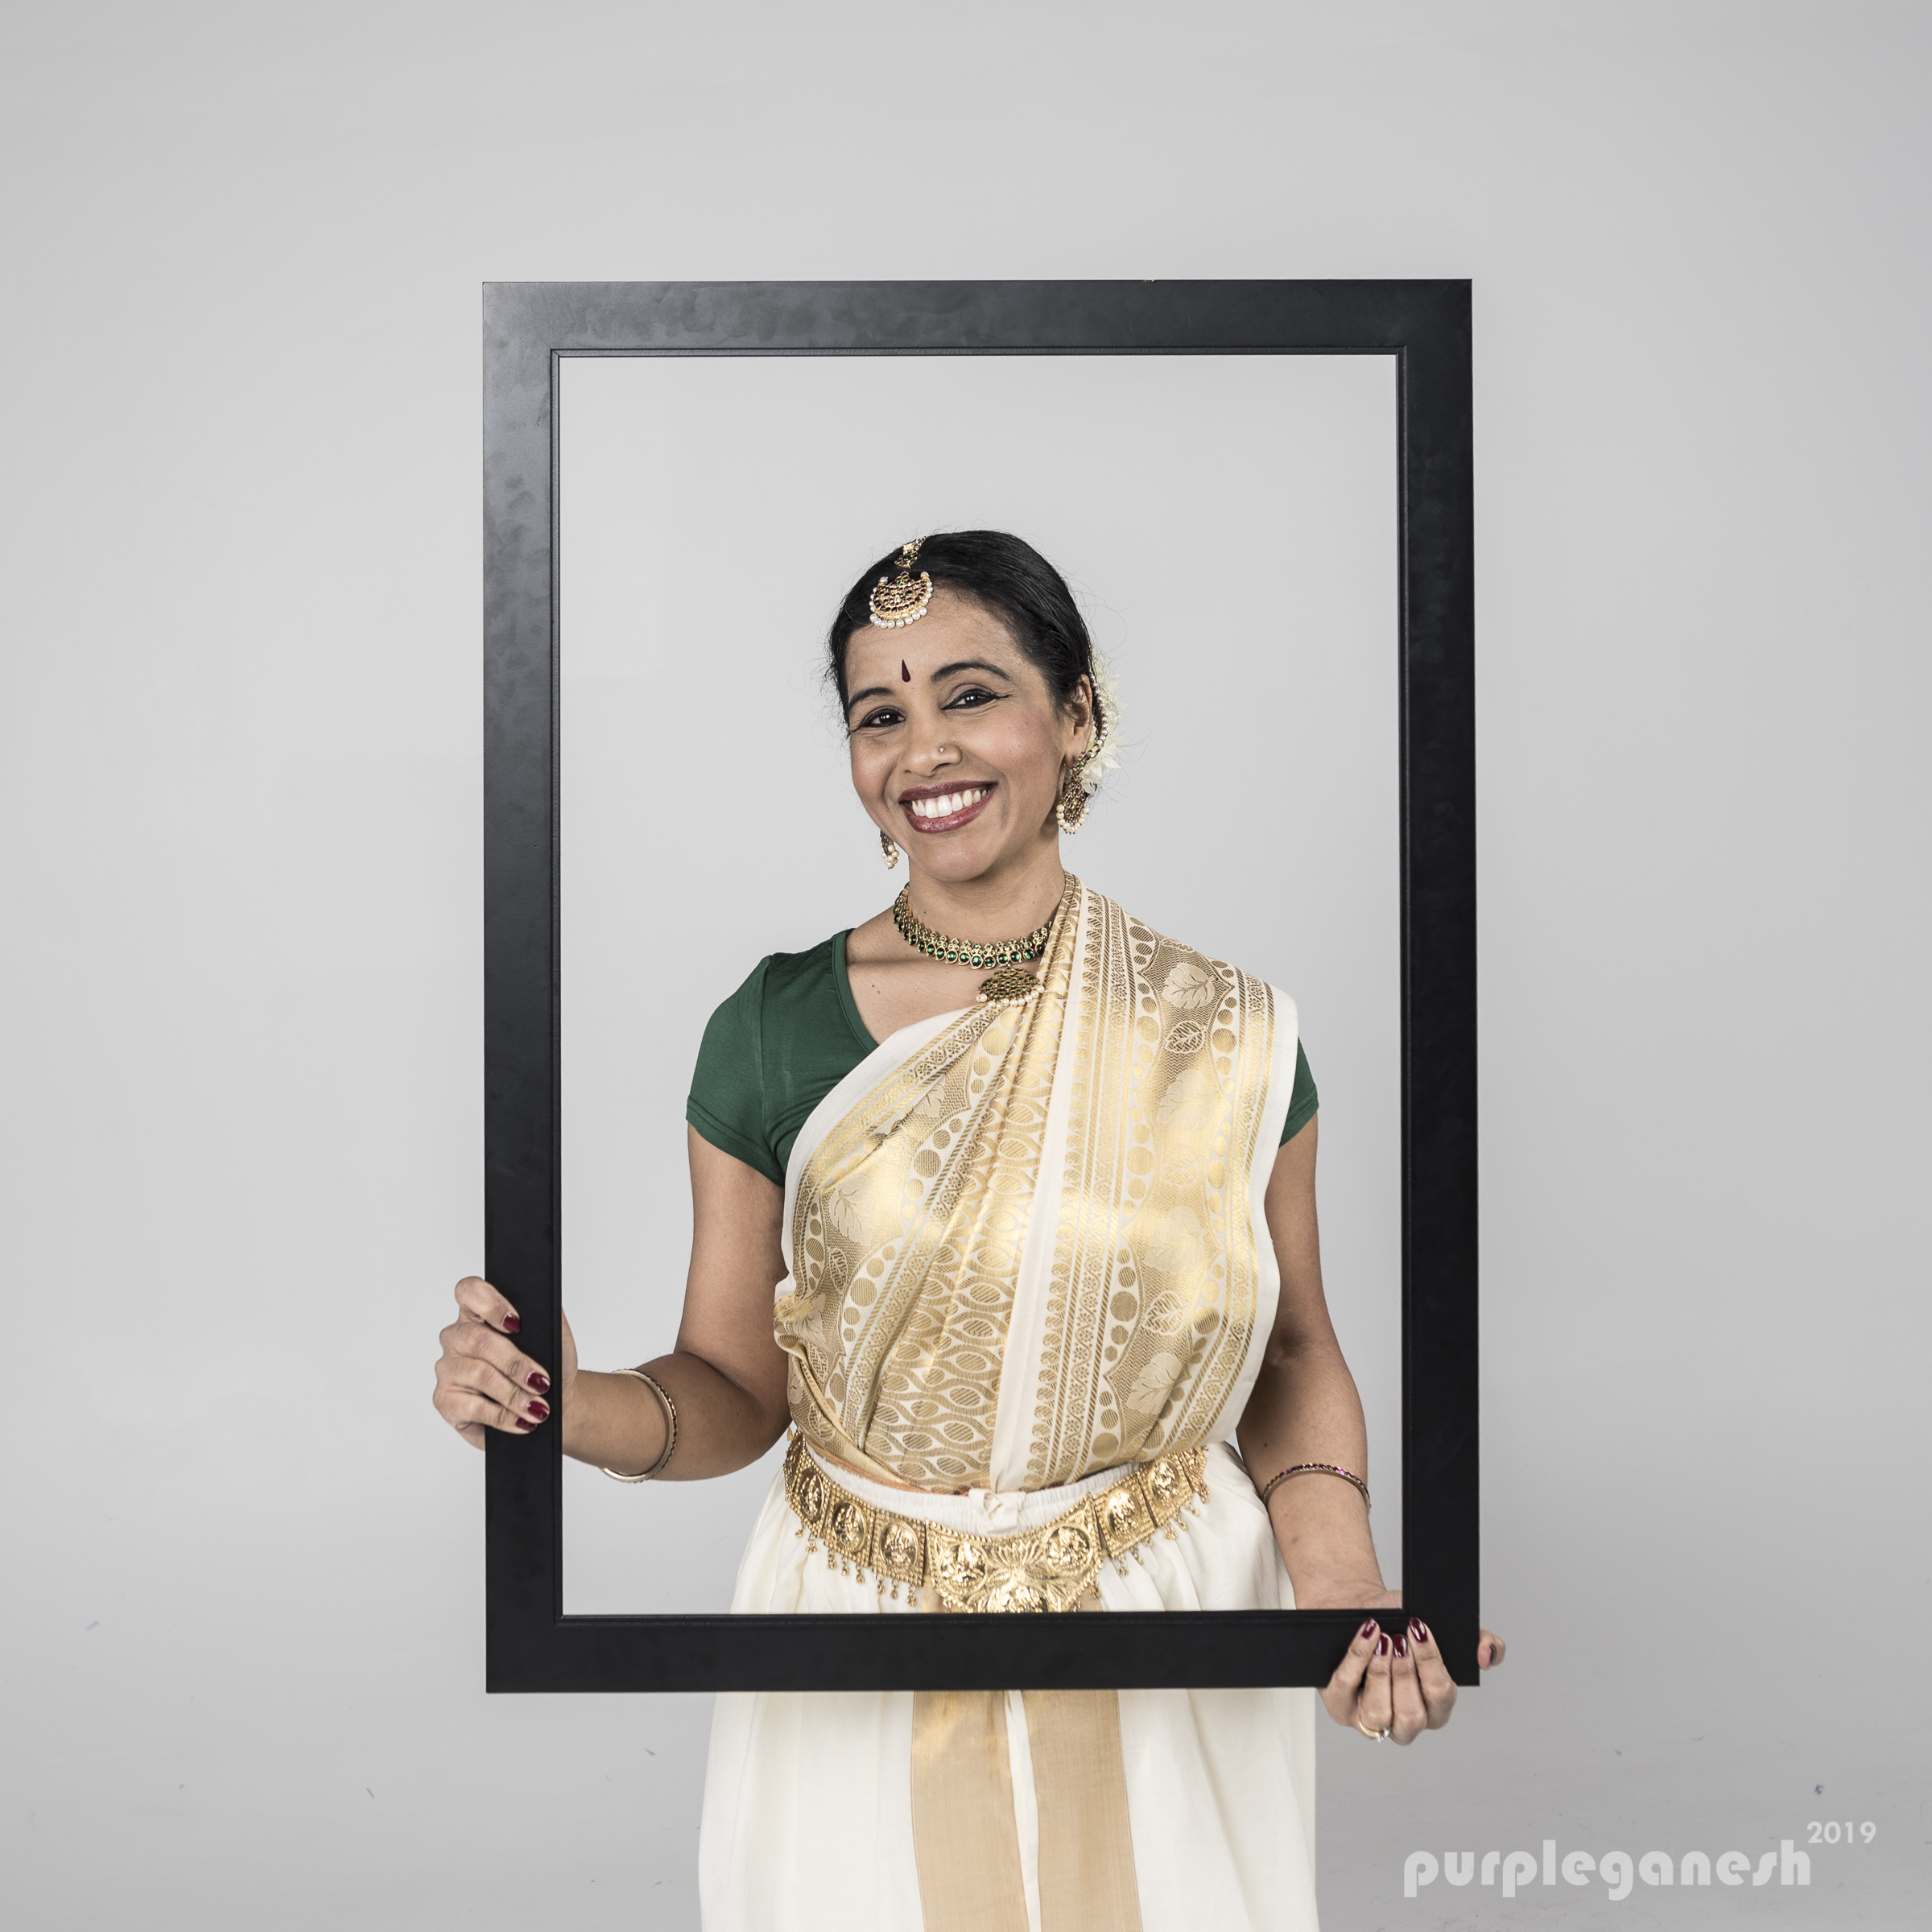 Dr. Smitha Radhakrishnan - (Artistic Director) founded NATyA in 2015 after three decades of training and performance. Born and raised in the U.S., she has trained continuously with prominent Bharatanatyam teachers in the U.S. and India since age 5, including Asha Gopal (Phoenix), Katherine Kunhiraman (Berkeley), Padmini Ravi (Bangalore), Girija Chandran (Thiruvananthapuram), Prakriti Bhaskar (Mumbai) and Chitra Chandrasekar Dasarathy (Bangalore). She has performed in professional solo and group productions all over the United States. In South Africa, she has performed and taught with the Surialanga Dance Company of Durban. In 2003, she co-founded NATyA Dance Company with fellow dancer Vallari Shah. Over the next four years, they performed over 80 shows all over the California Bay Area, including four original productions. Since 2008, Smitha has been training in Bharatanatyam, contemporary dance forms, and Indian martial arts while performing with Navarasa Dance Theater. She currently serves on the Navarasa board and continue to train in Mysore style Bharatanatyam with Dr. Sindhoor.